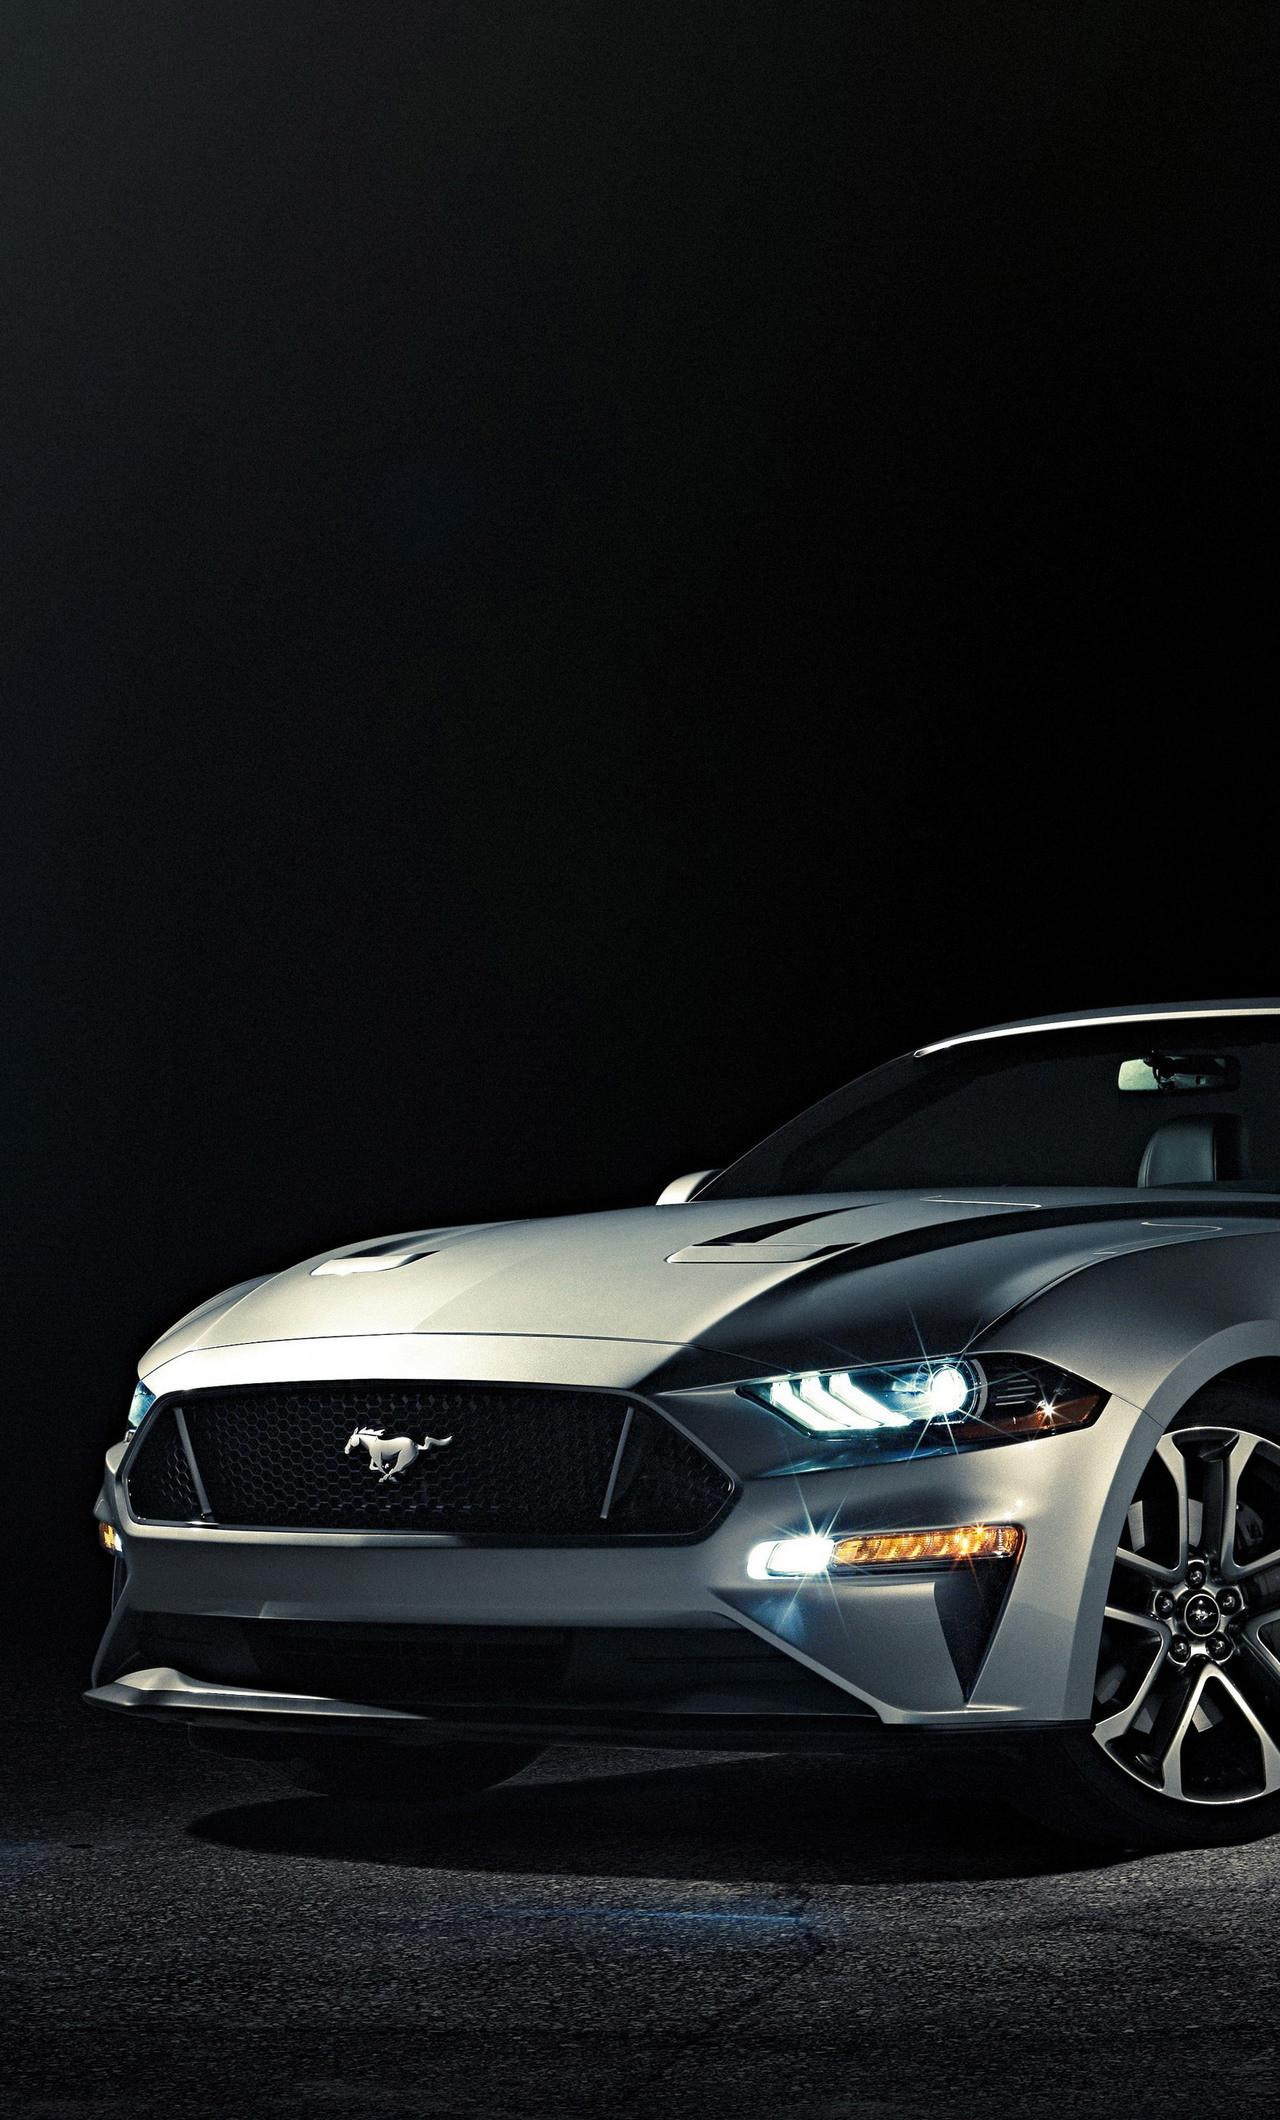 Mustang Logo Iphone Xs Max Wallpapers Wallpaper Cave